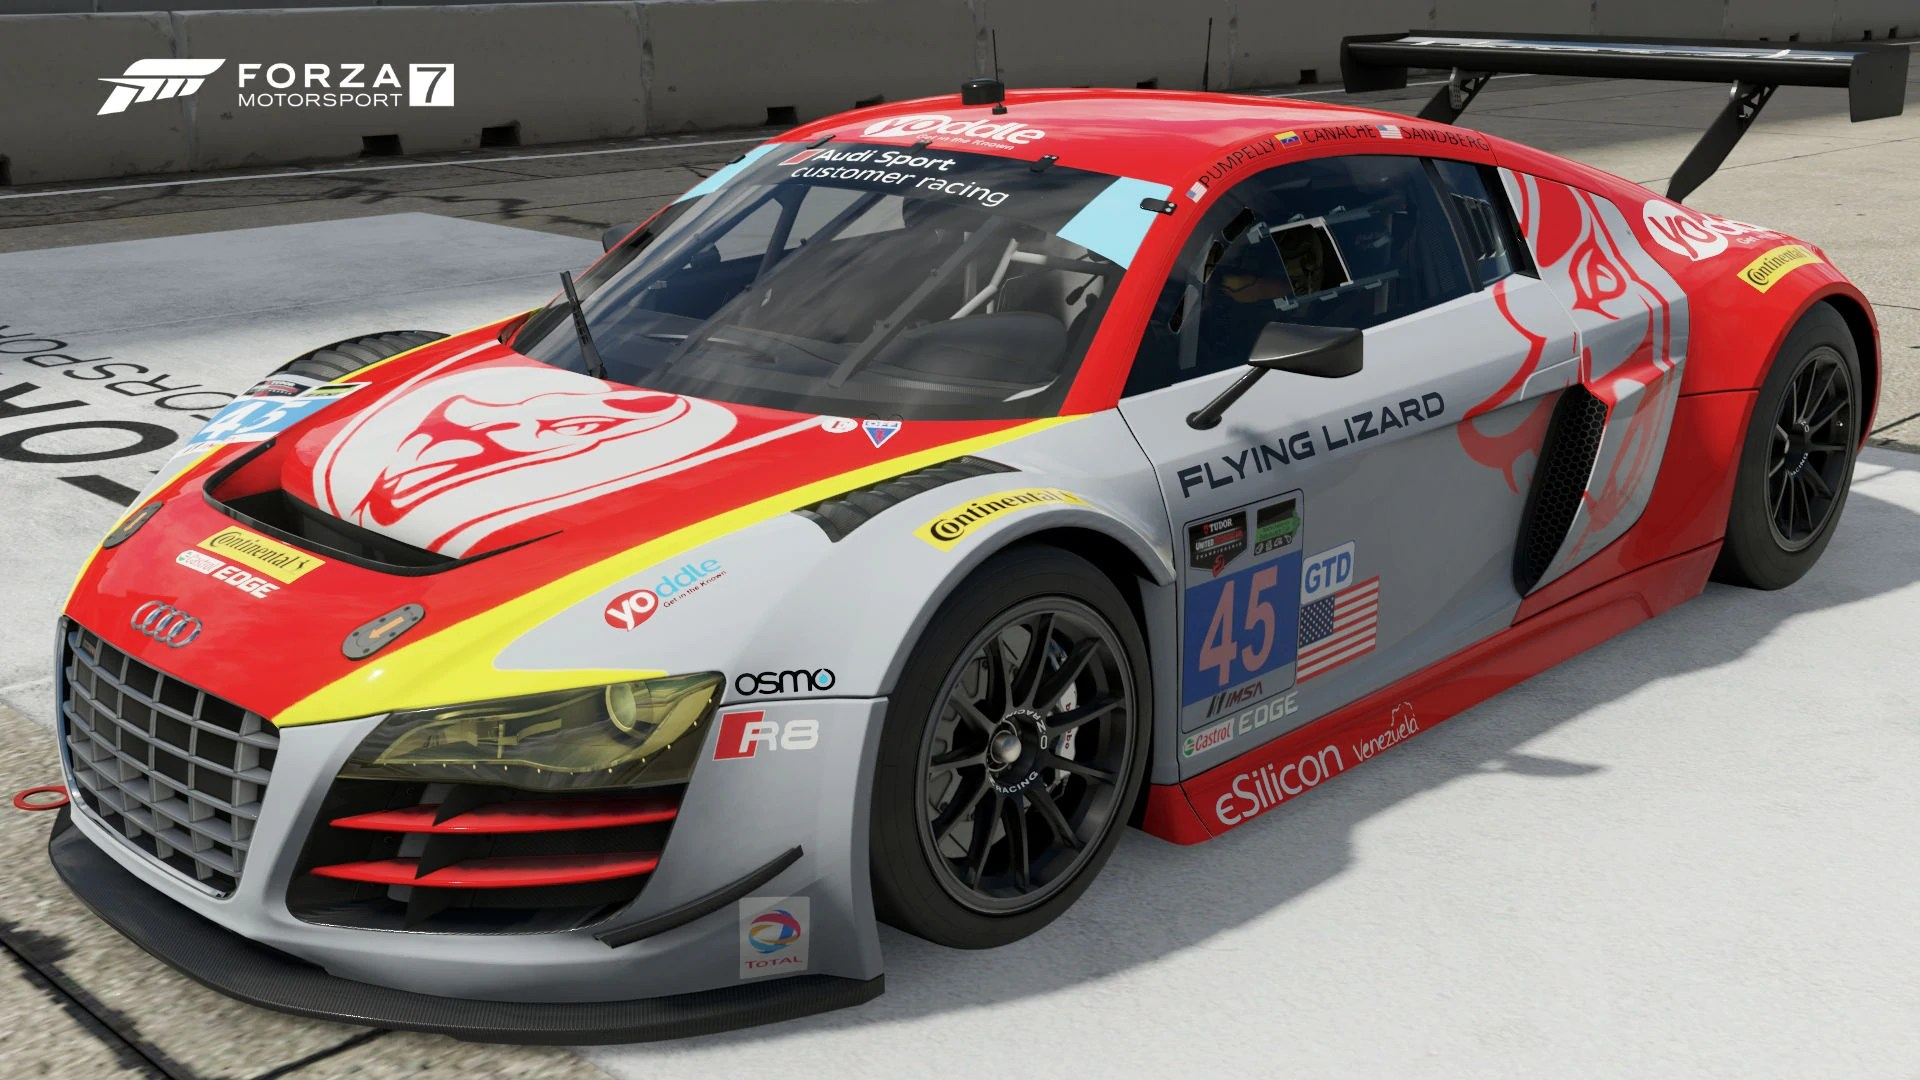 Audi #45 Flying Lizard Motorsports R8 LMS ultra | Forza Motorsport Wiki | FANDOM powered by Wikia